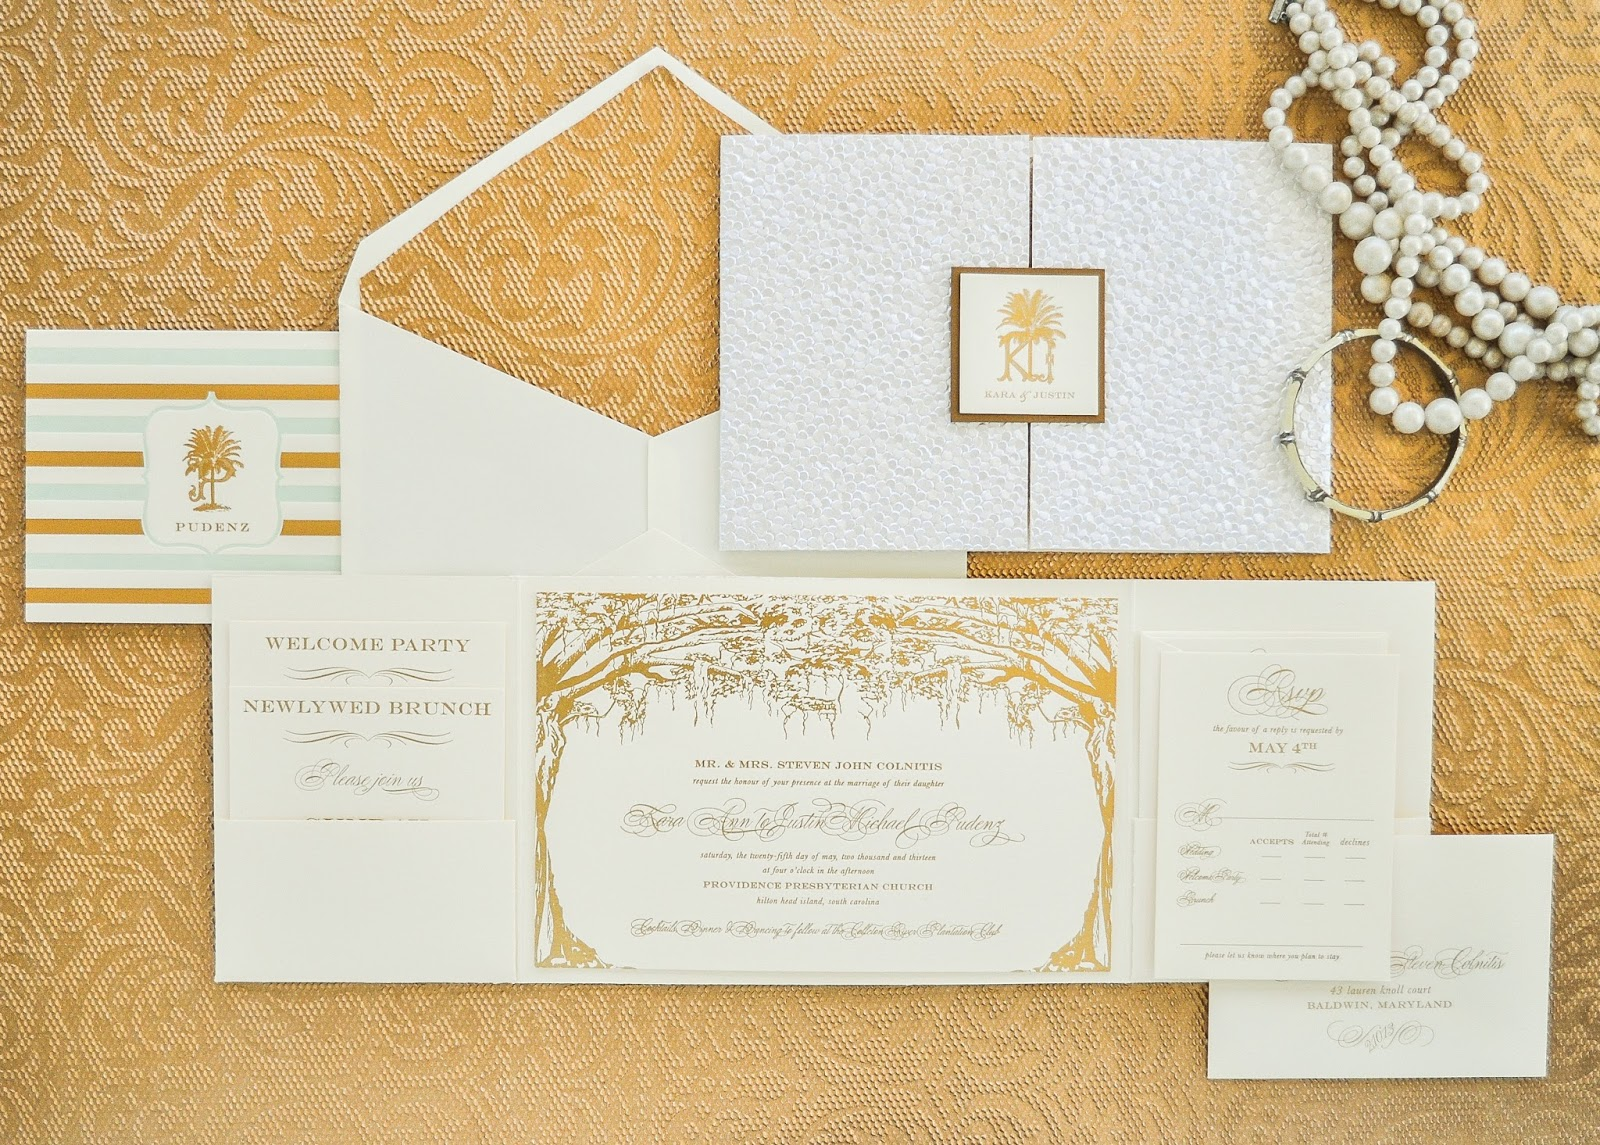 Stationery Suite for a wedding